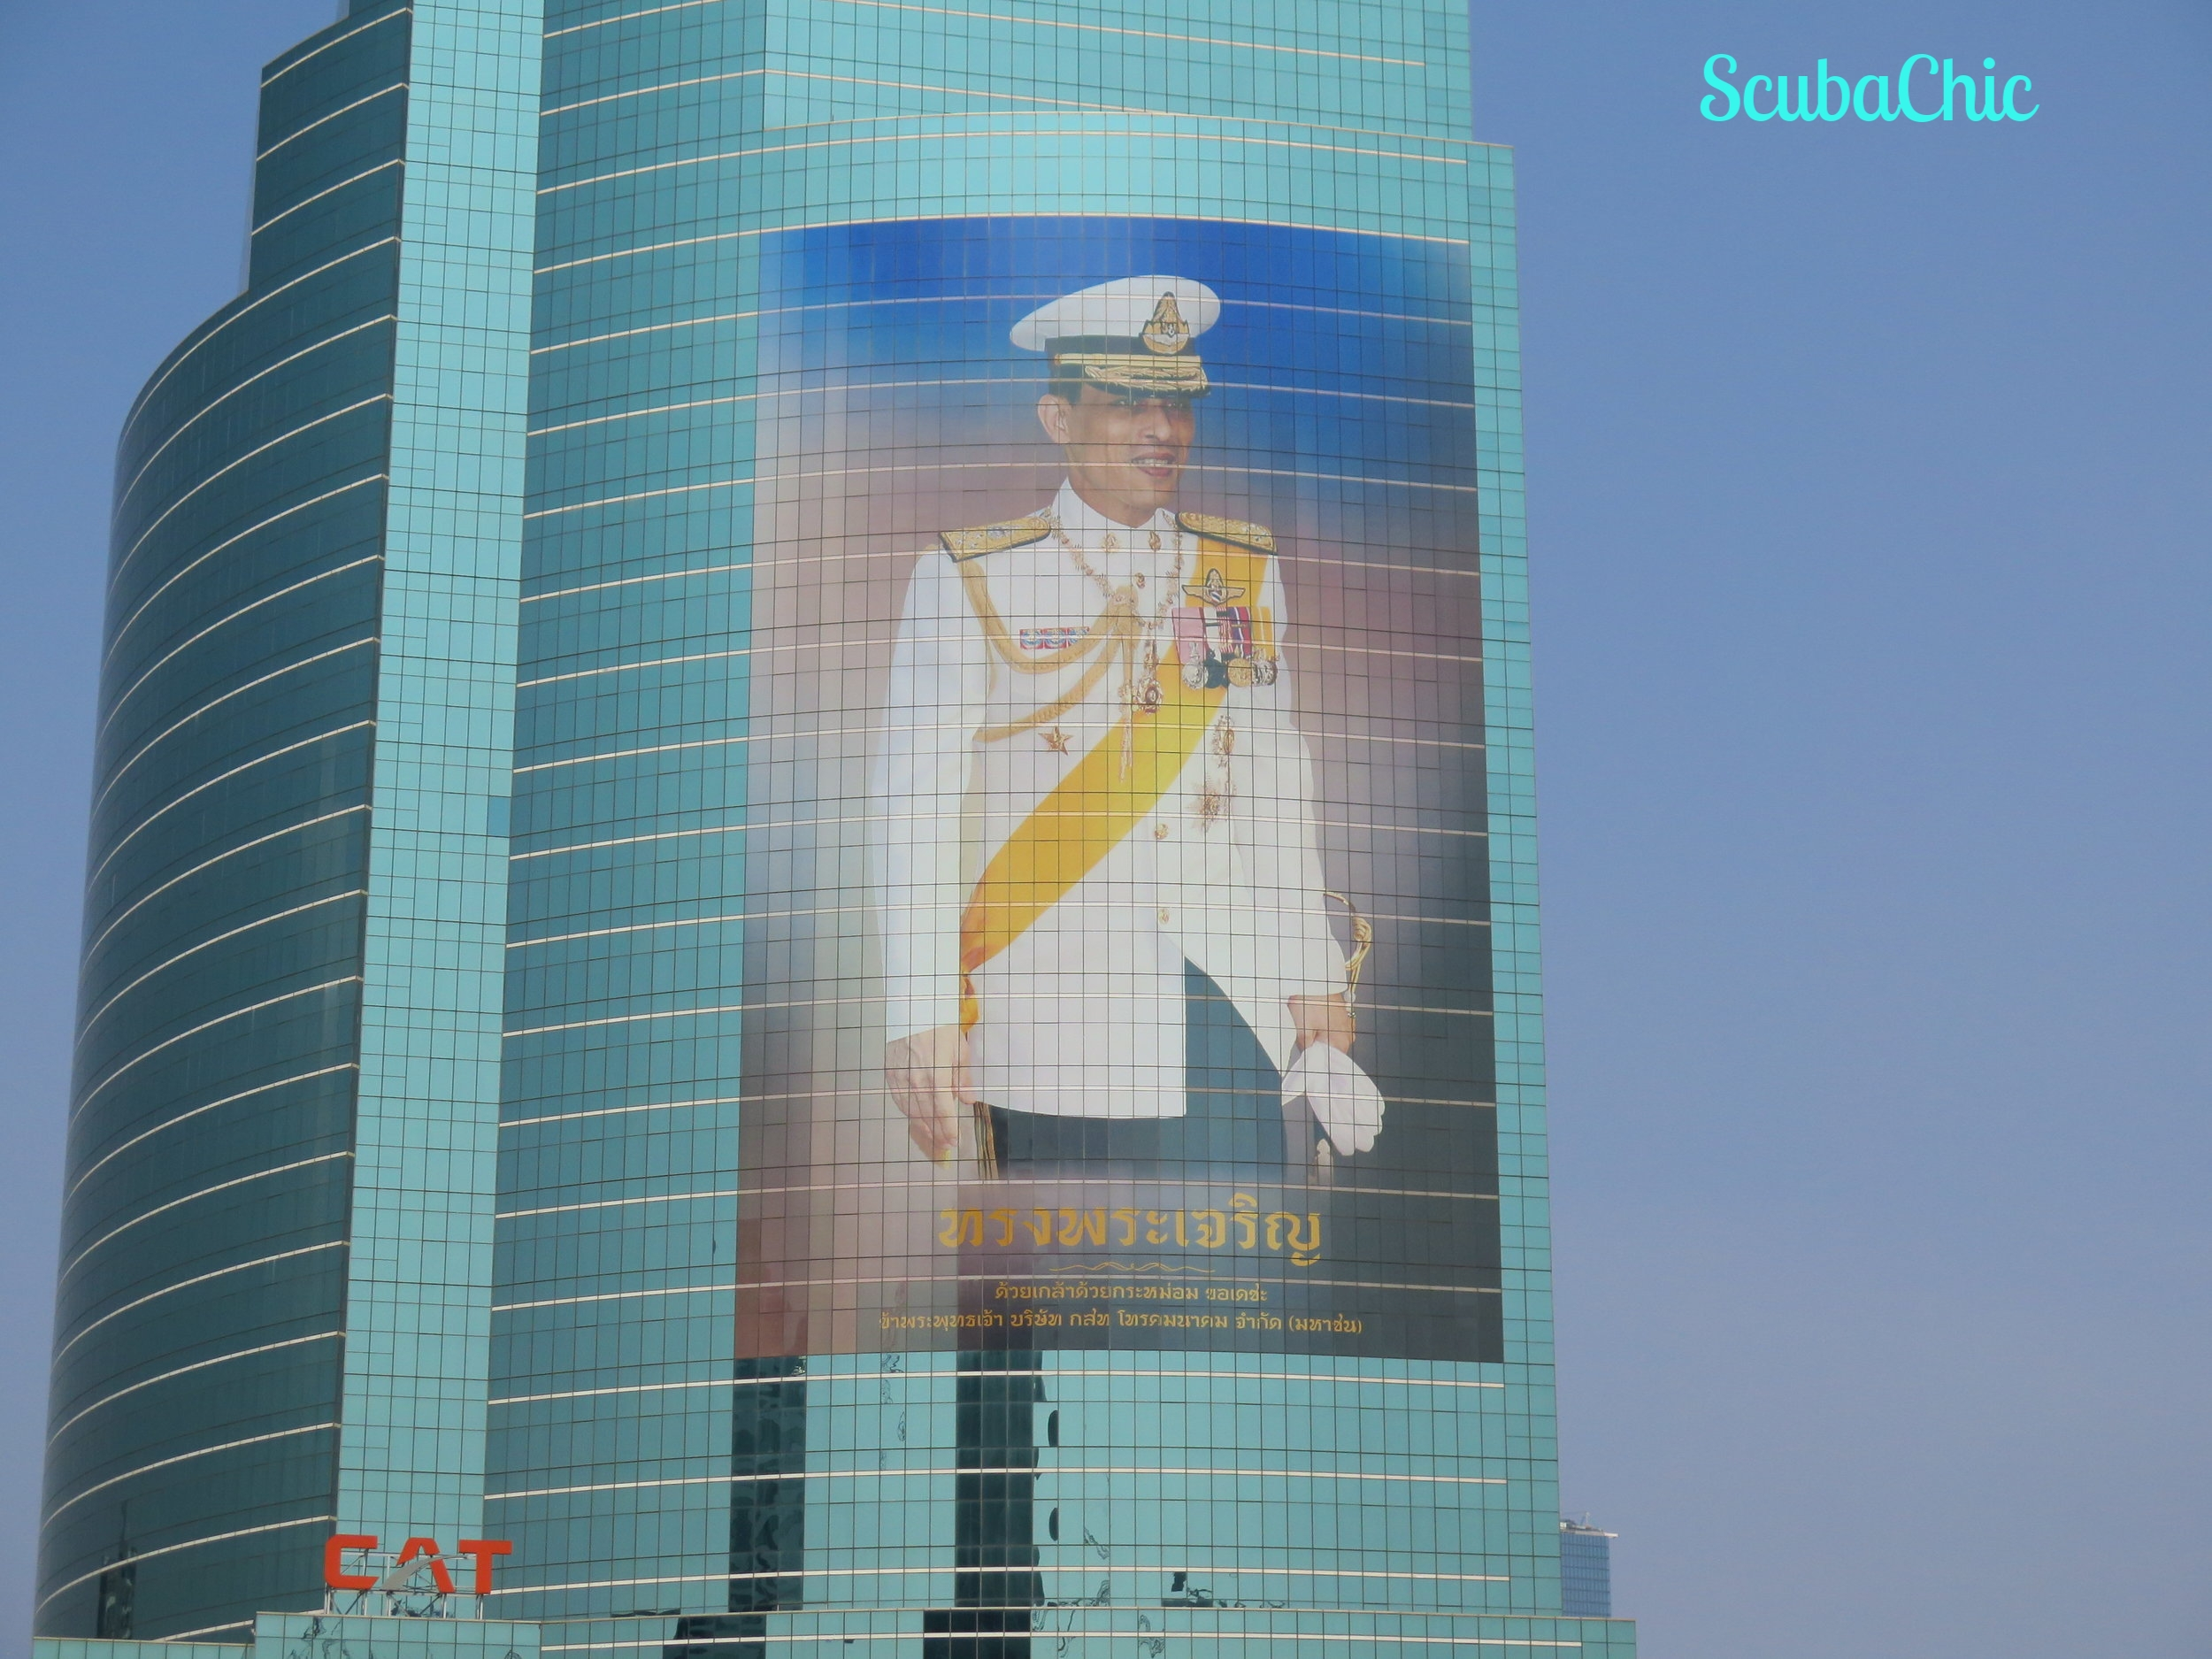 The King on a building